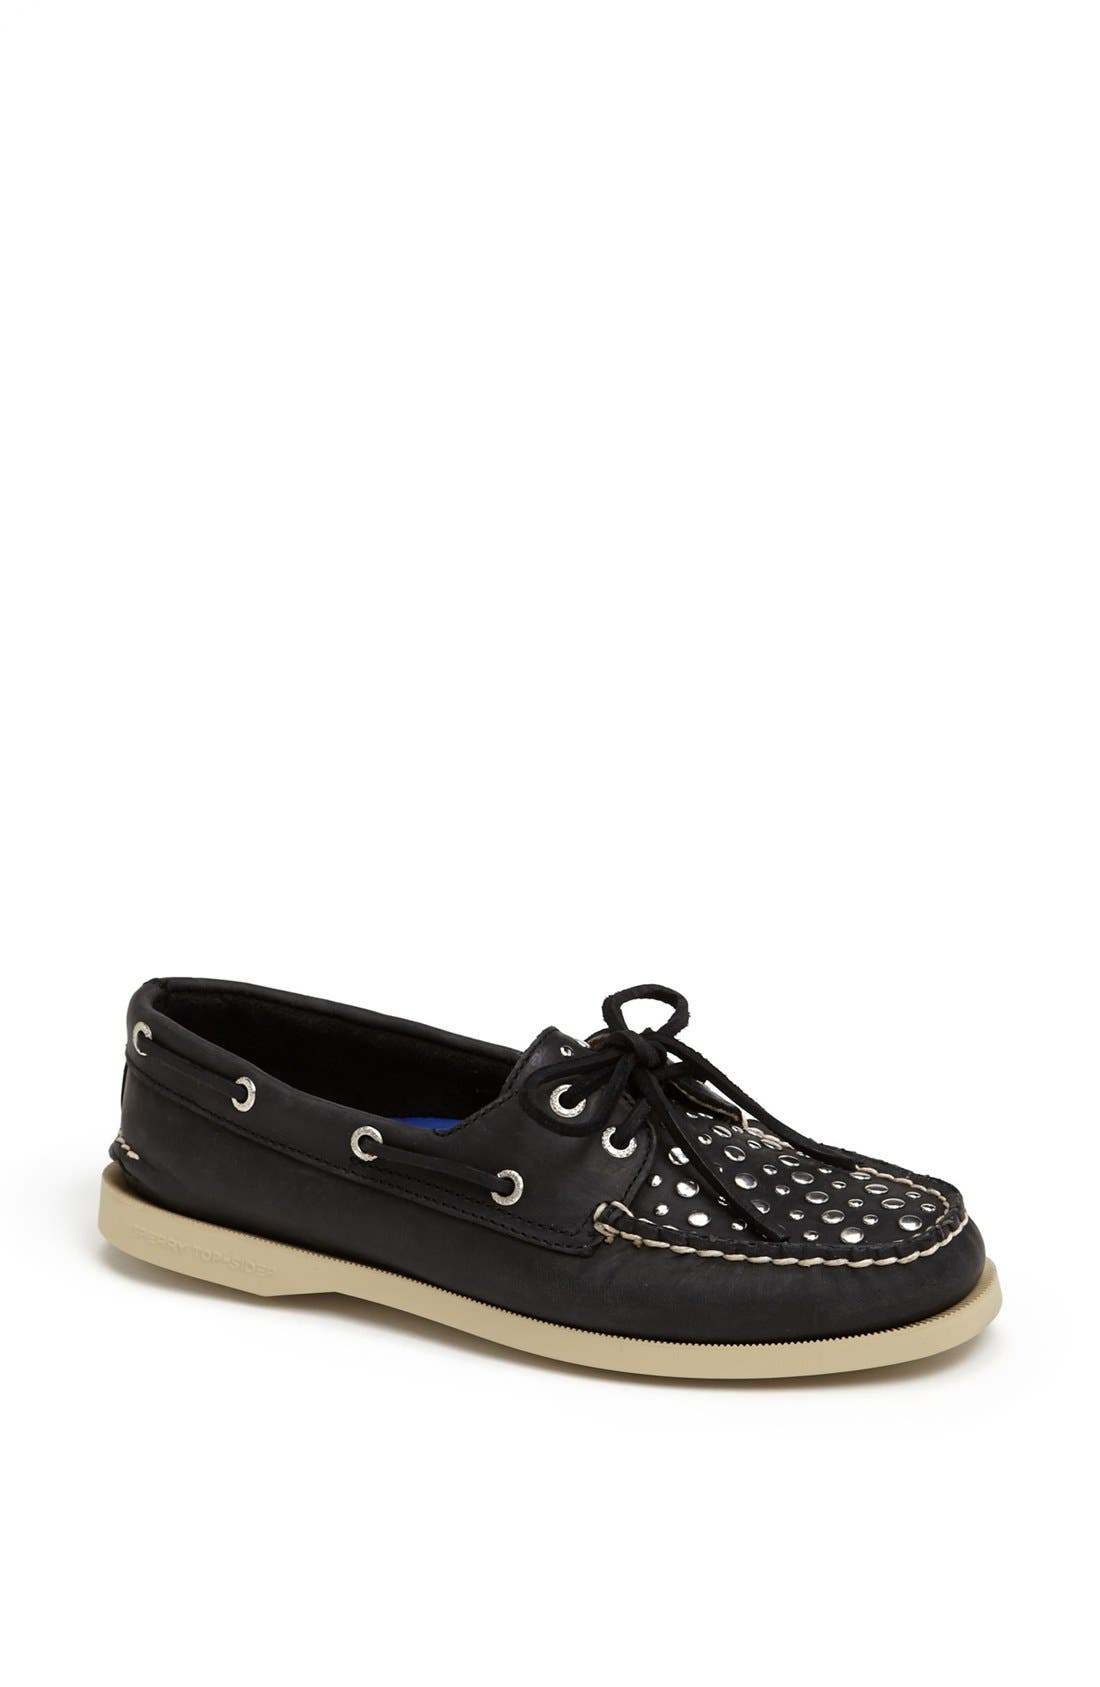 Main Image - Sperry Top-Sider® Studded Boat Shoe